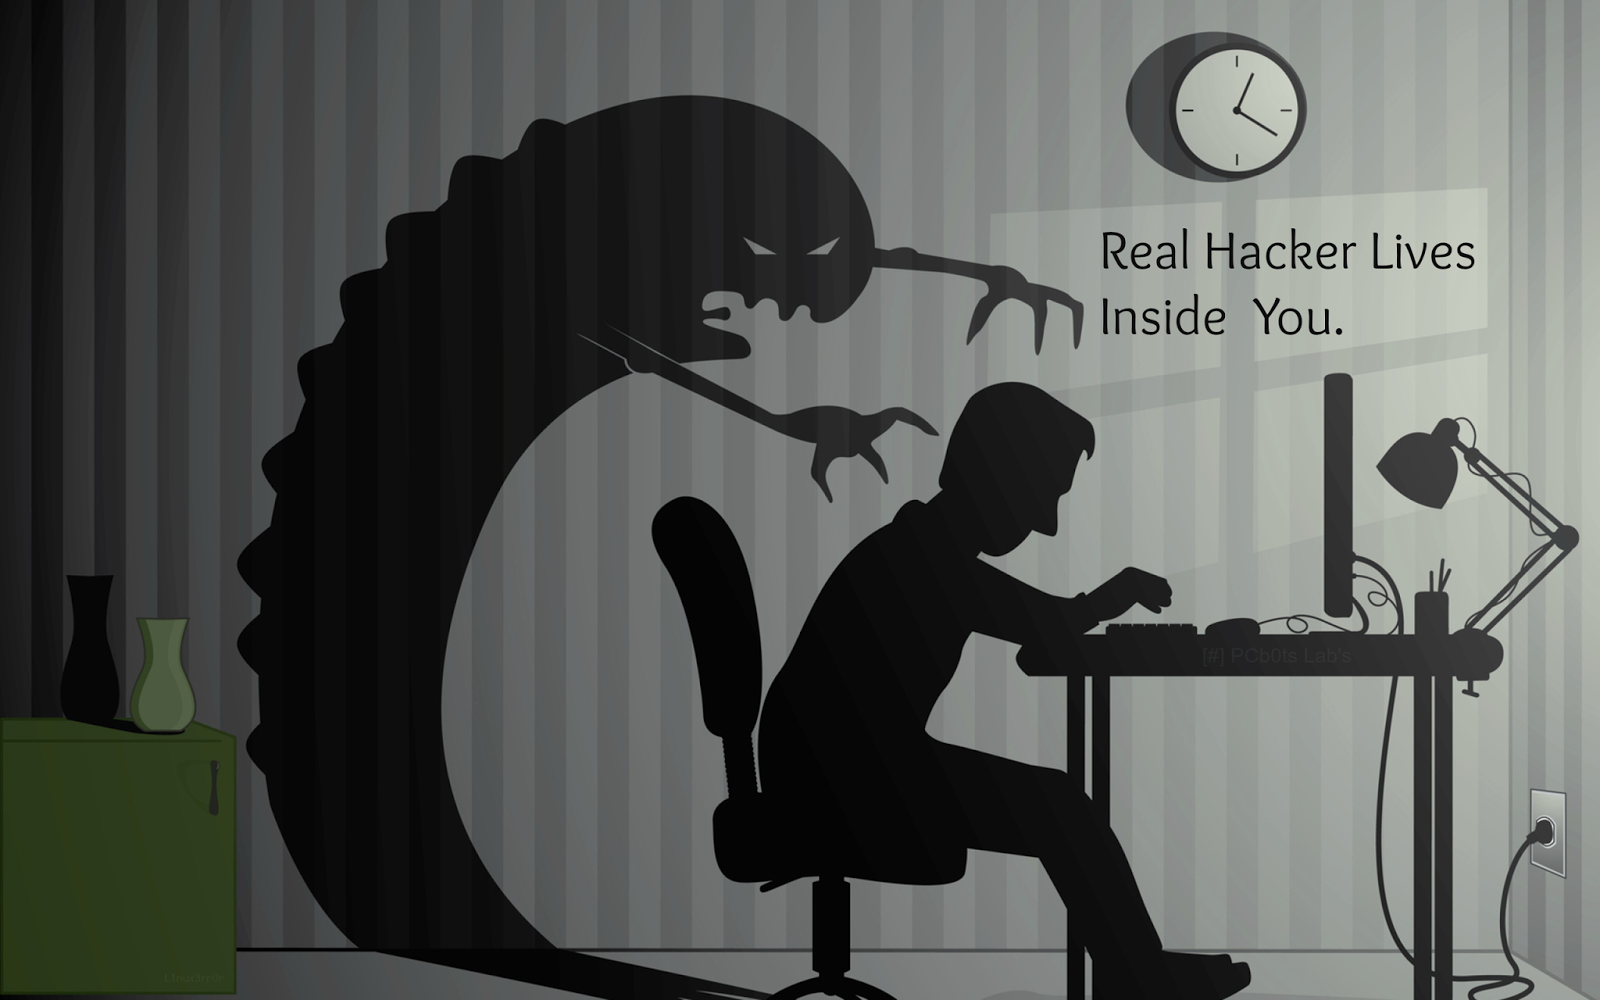 Hackers Wallpaper HD By Pcbots - Part-VII ~ PCbots Labs (Blog)